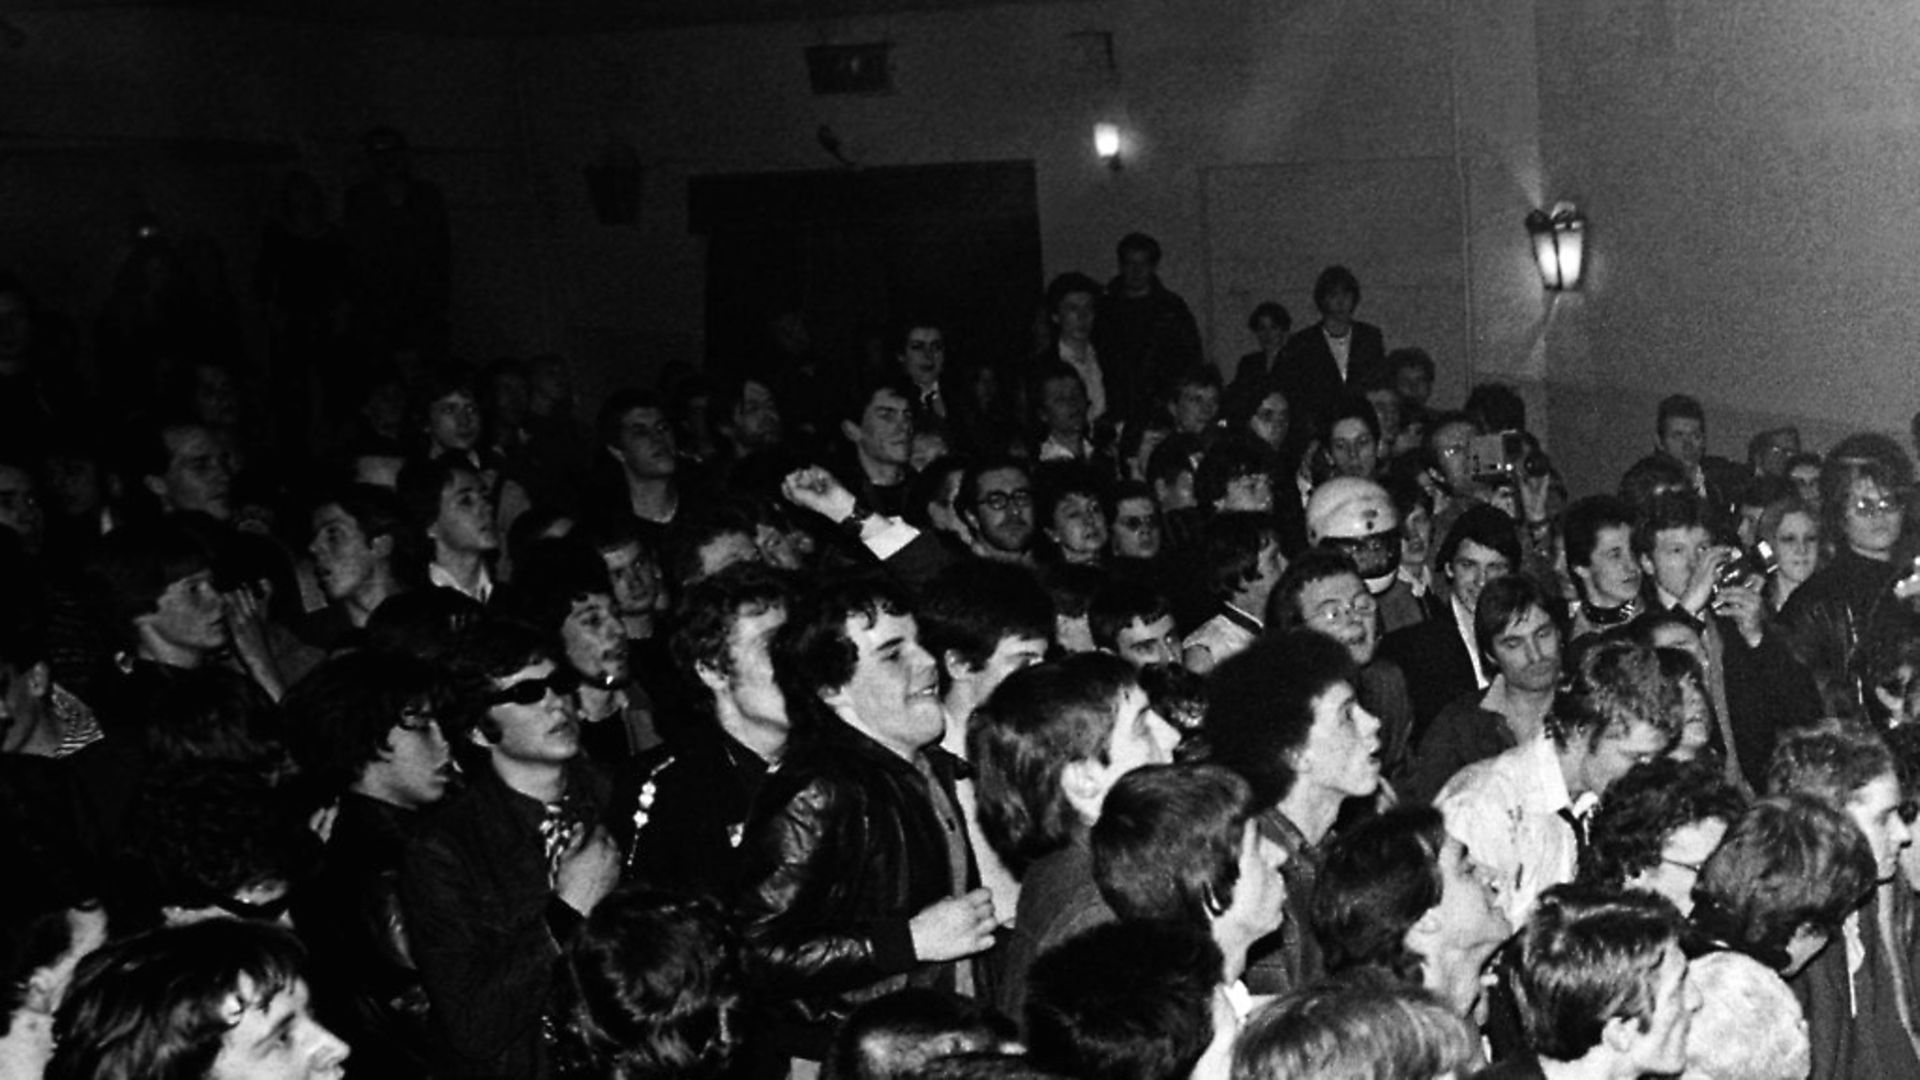 Photo of Paul SIMONON and Joe STRUMMER and CLASH; Joe Strummer and Paul Simonon (jumping) performing live onstage in small venue, showing crowds  (Photo by Ian Dickson/Redferns) - Credit: Redferns